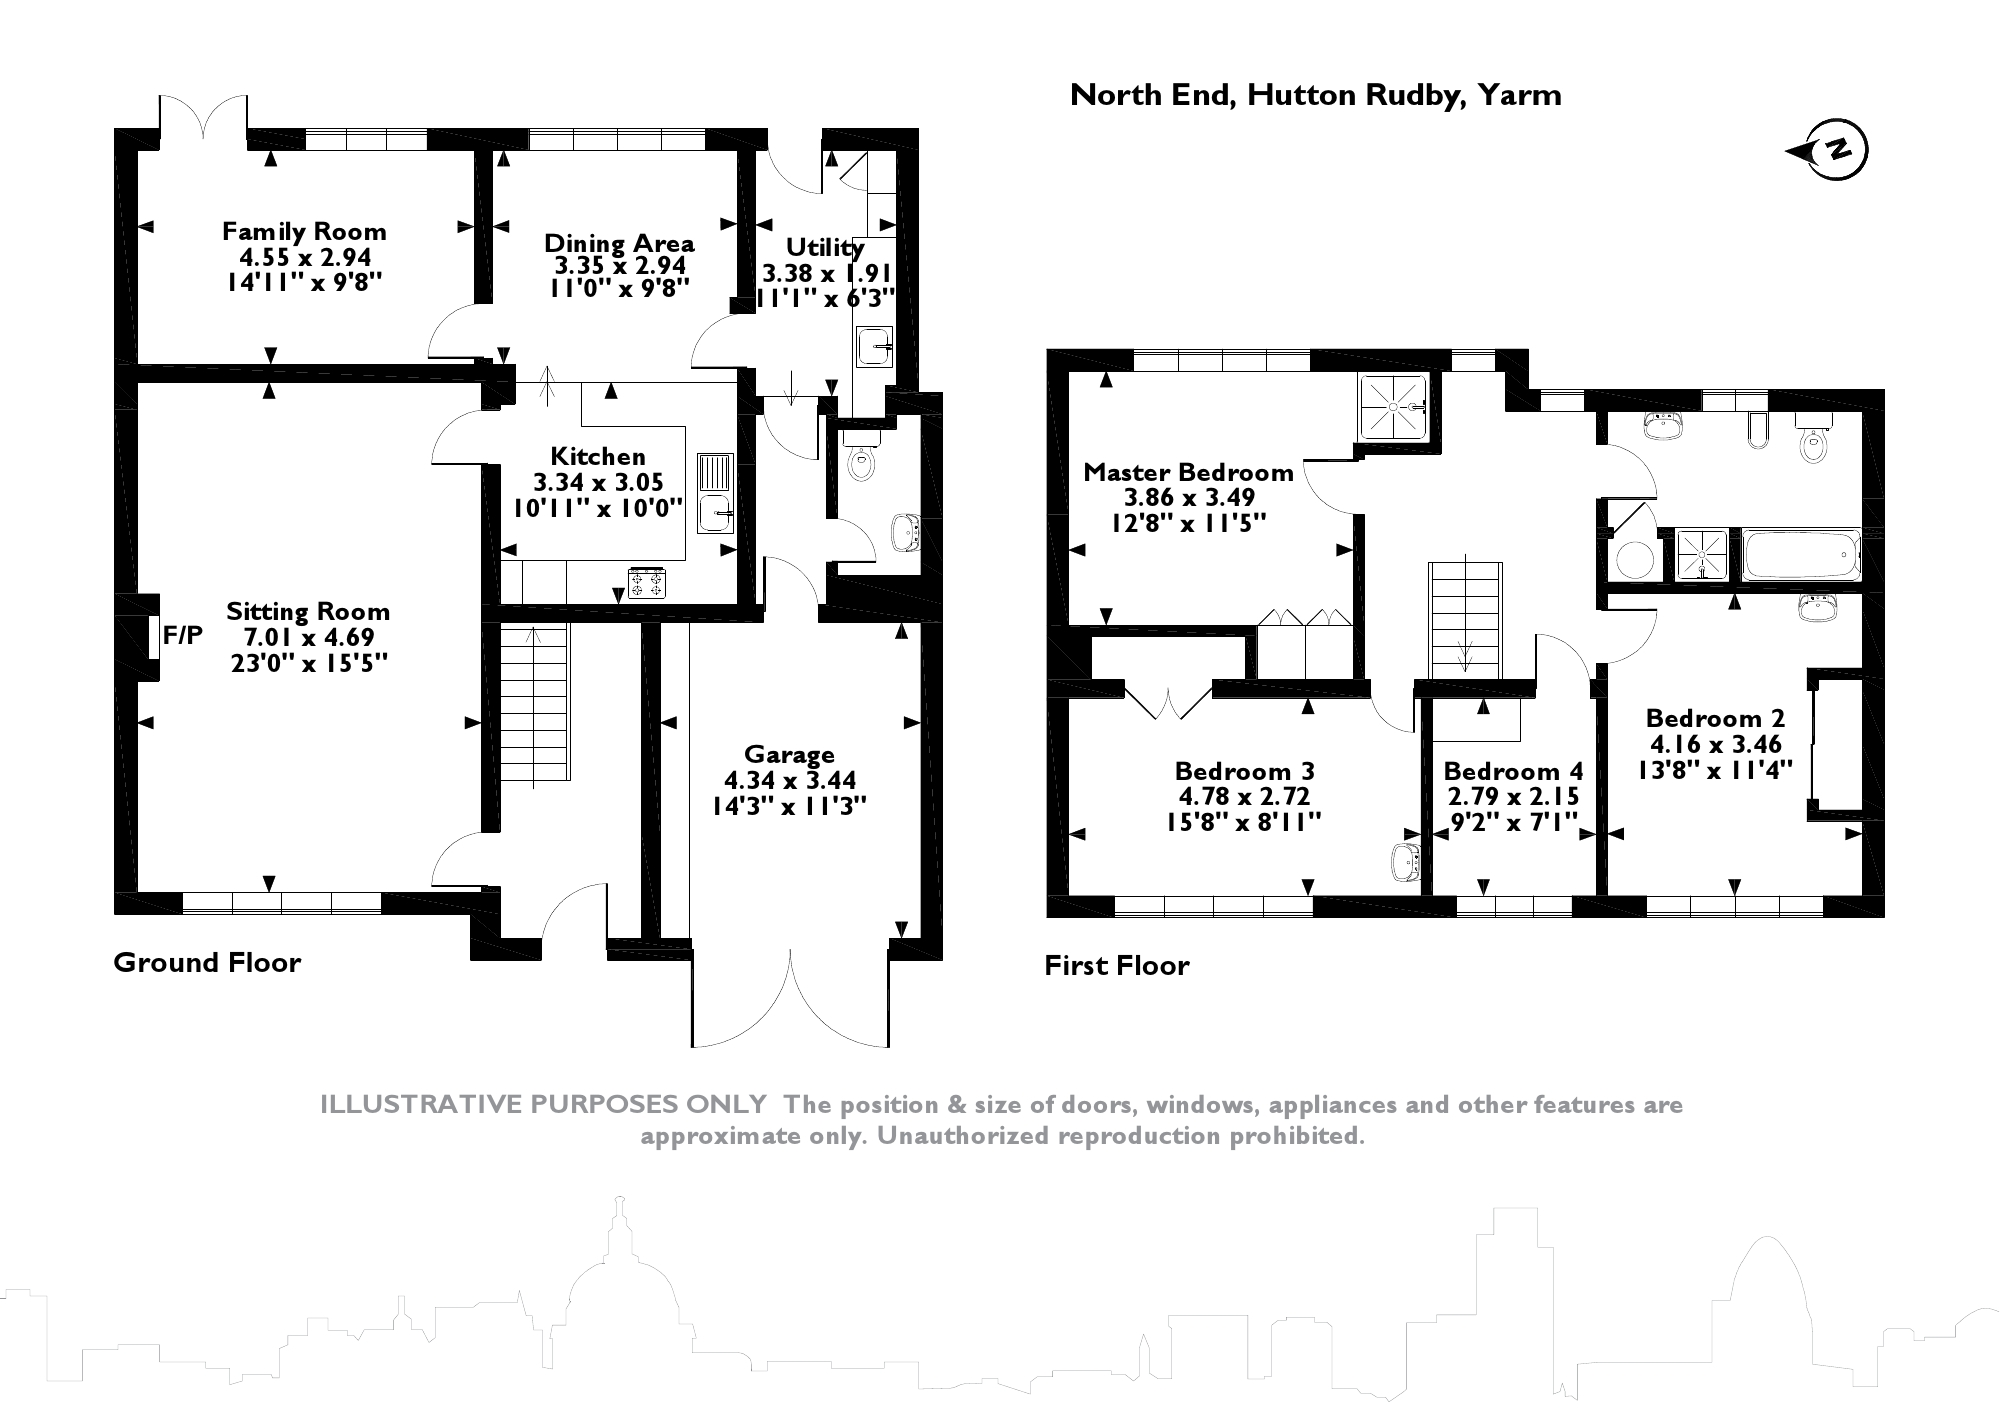 North End, Hutton Rudby,  Yarm, TS15 floor plan